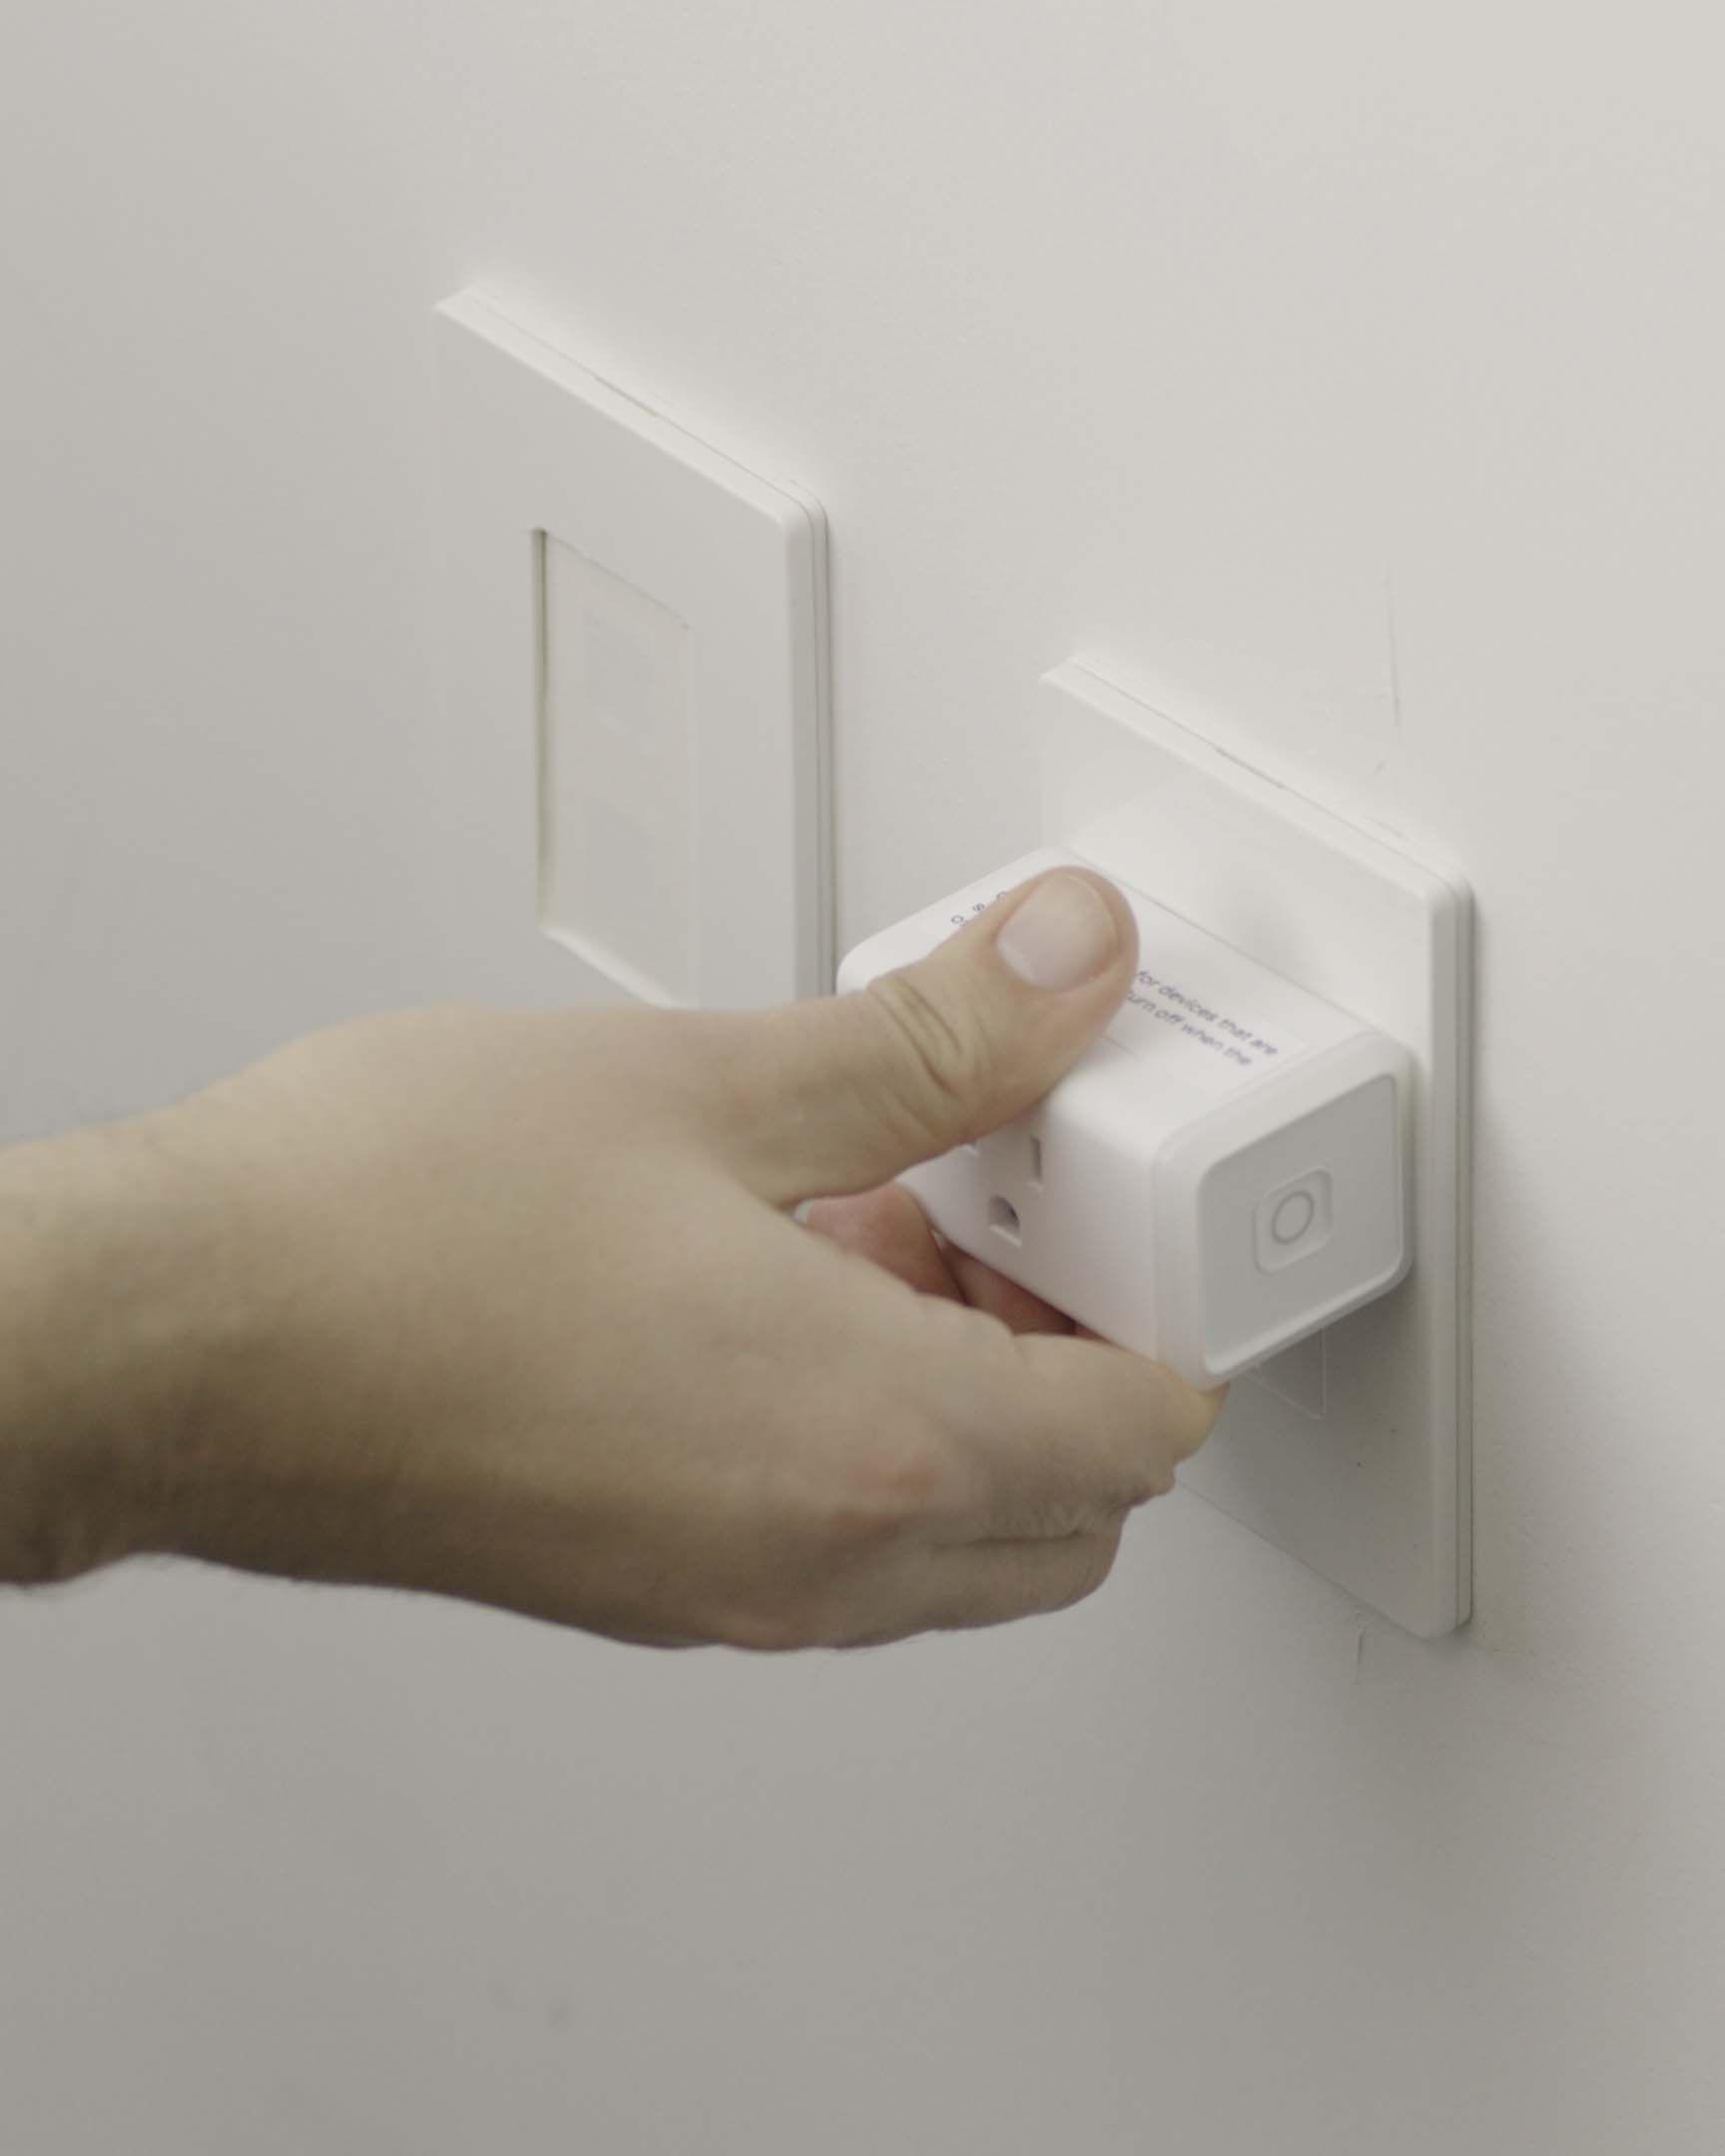 A hand plugging in a Mesa smart plug